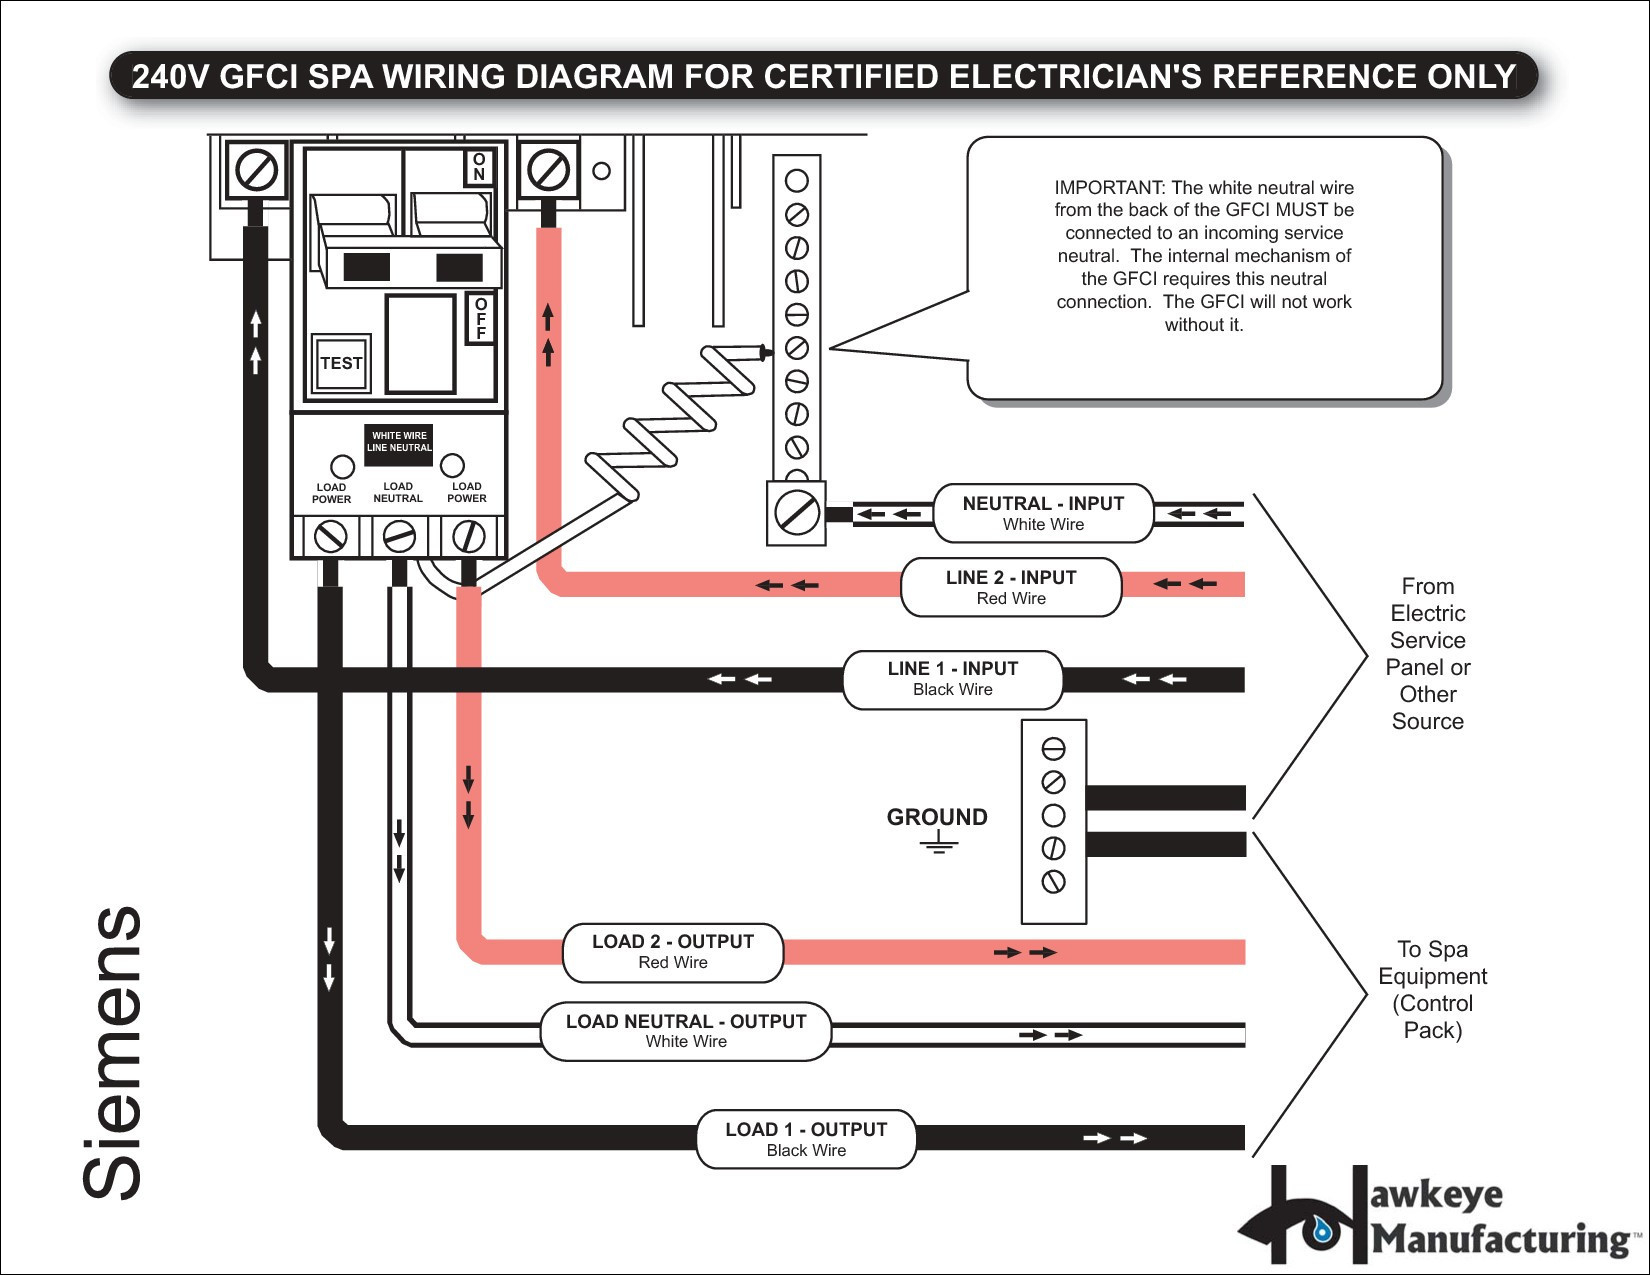 three pole breaker wiring diagram trusted schematics diagram 3 phase induction motor wiring 3 pole circuit breaker wiring diagram sample electric breaker box wiring diagram three pole breaker wiring diagram